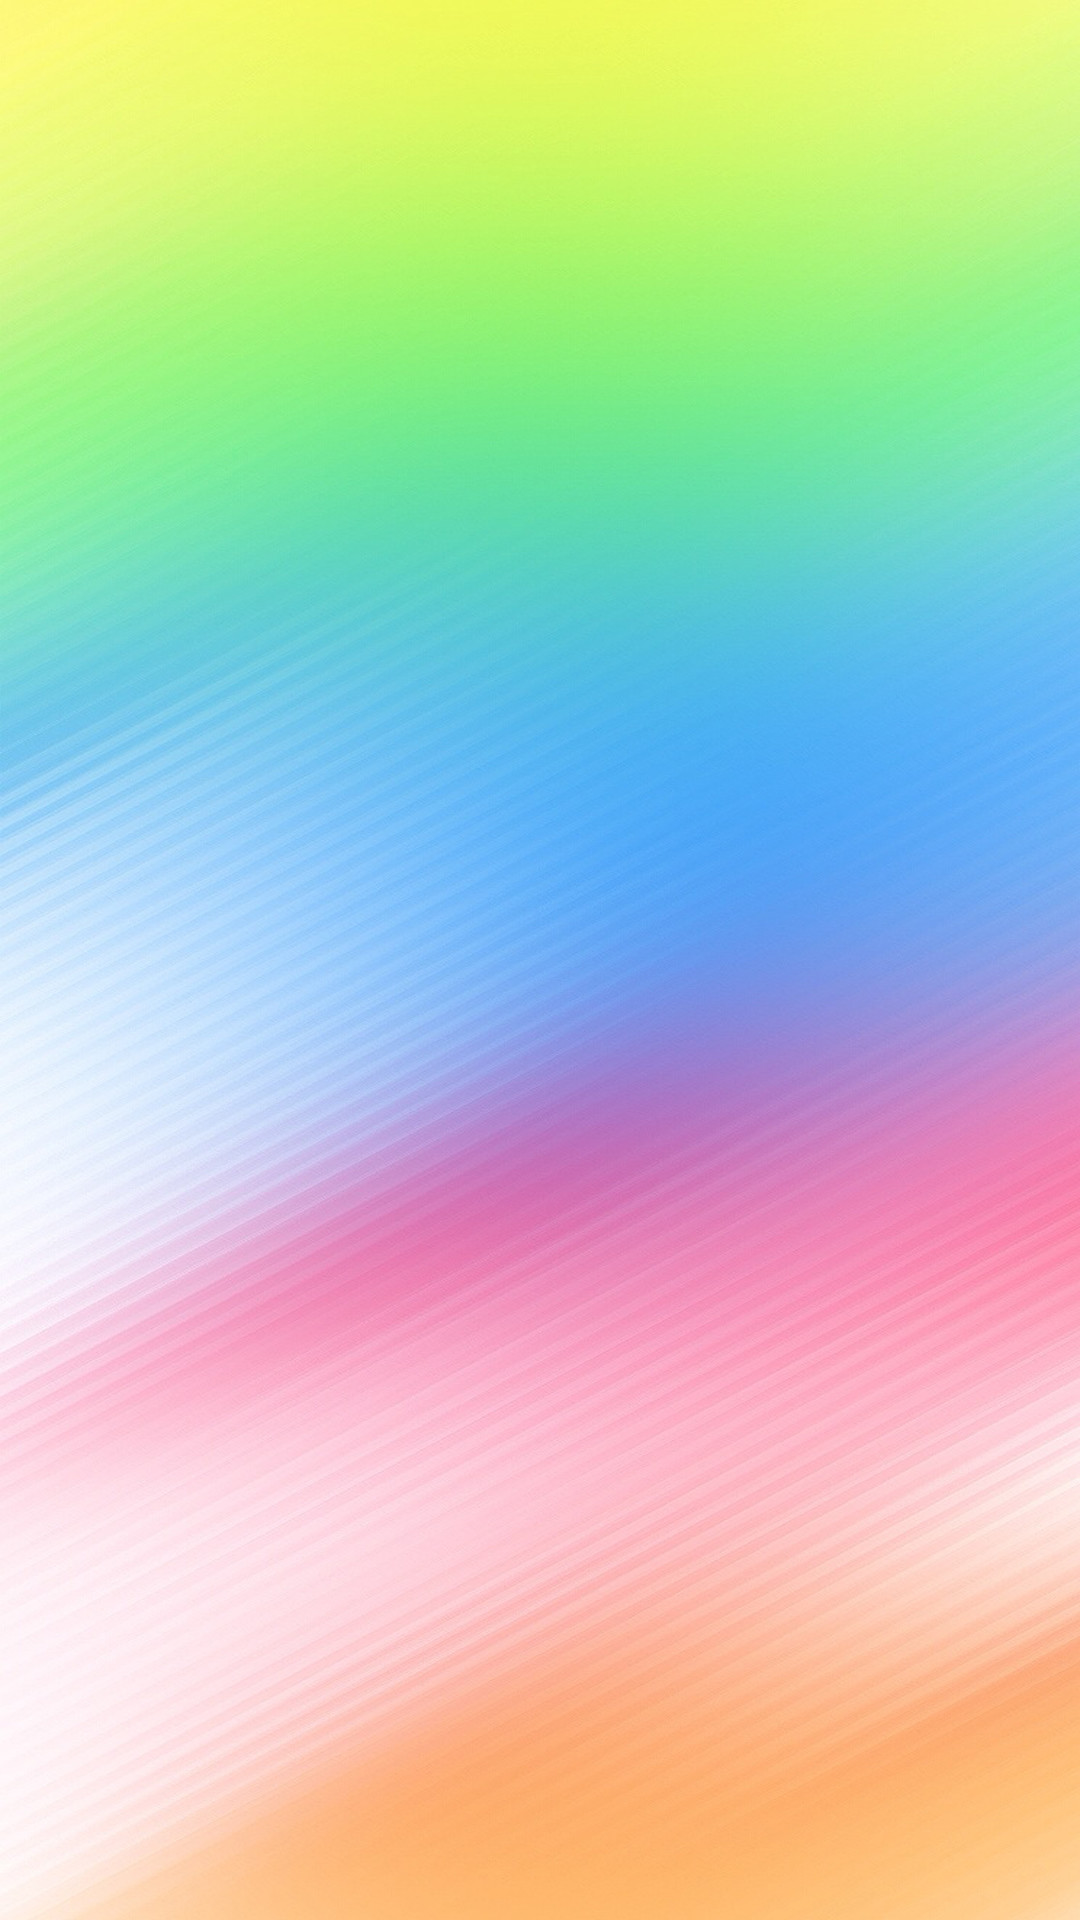 Res: 1080x1920, Colorful iOS 8 Stock Android Wallpaper ...